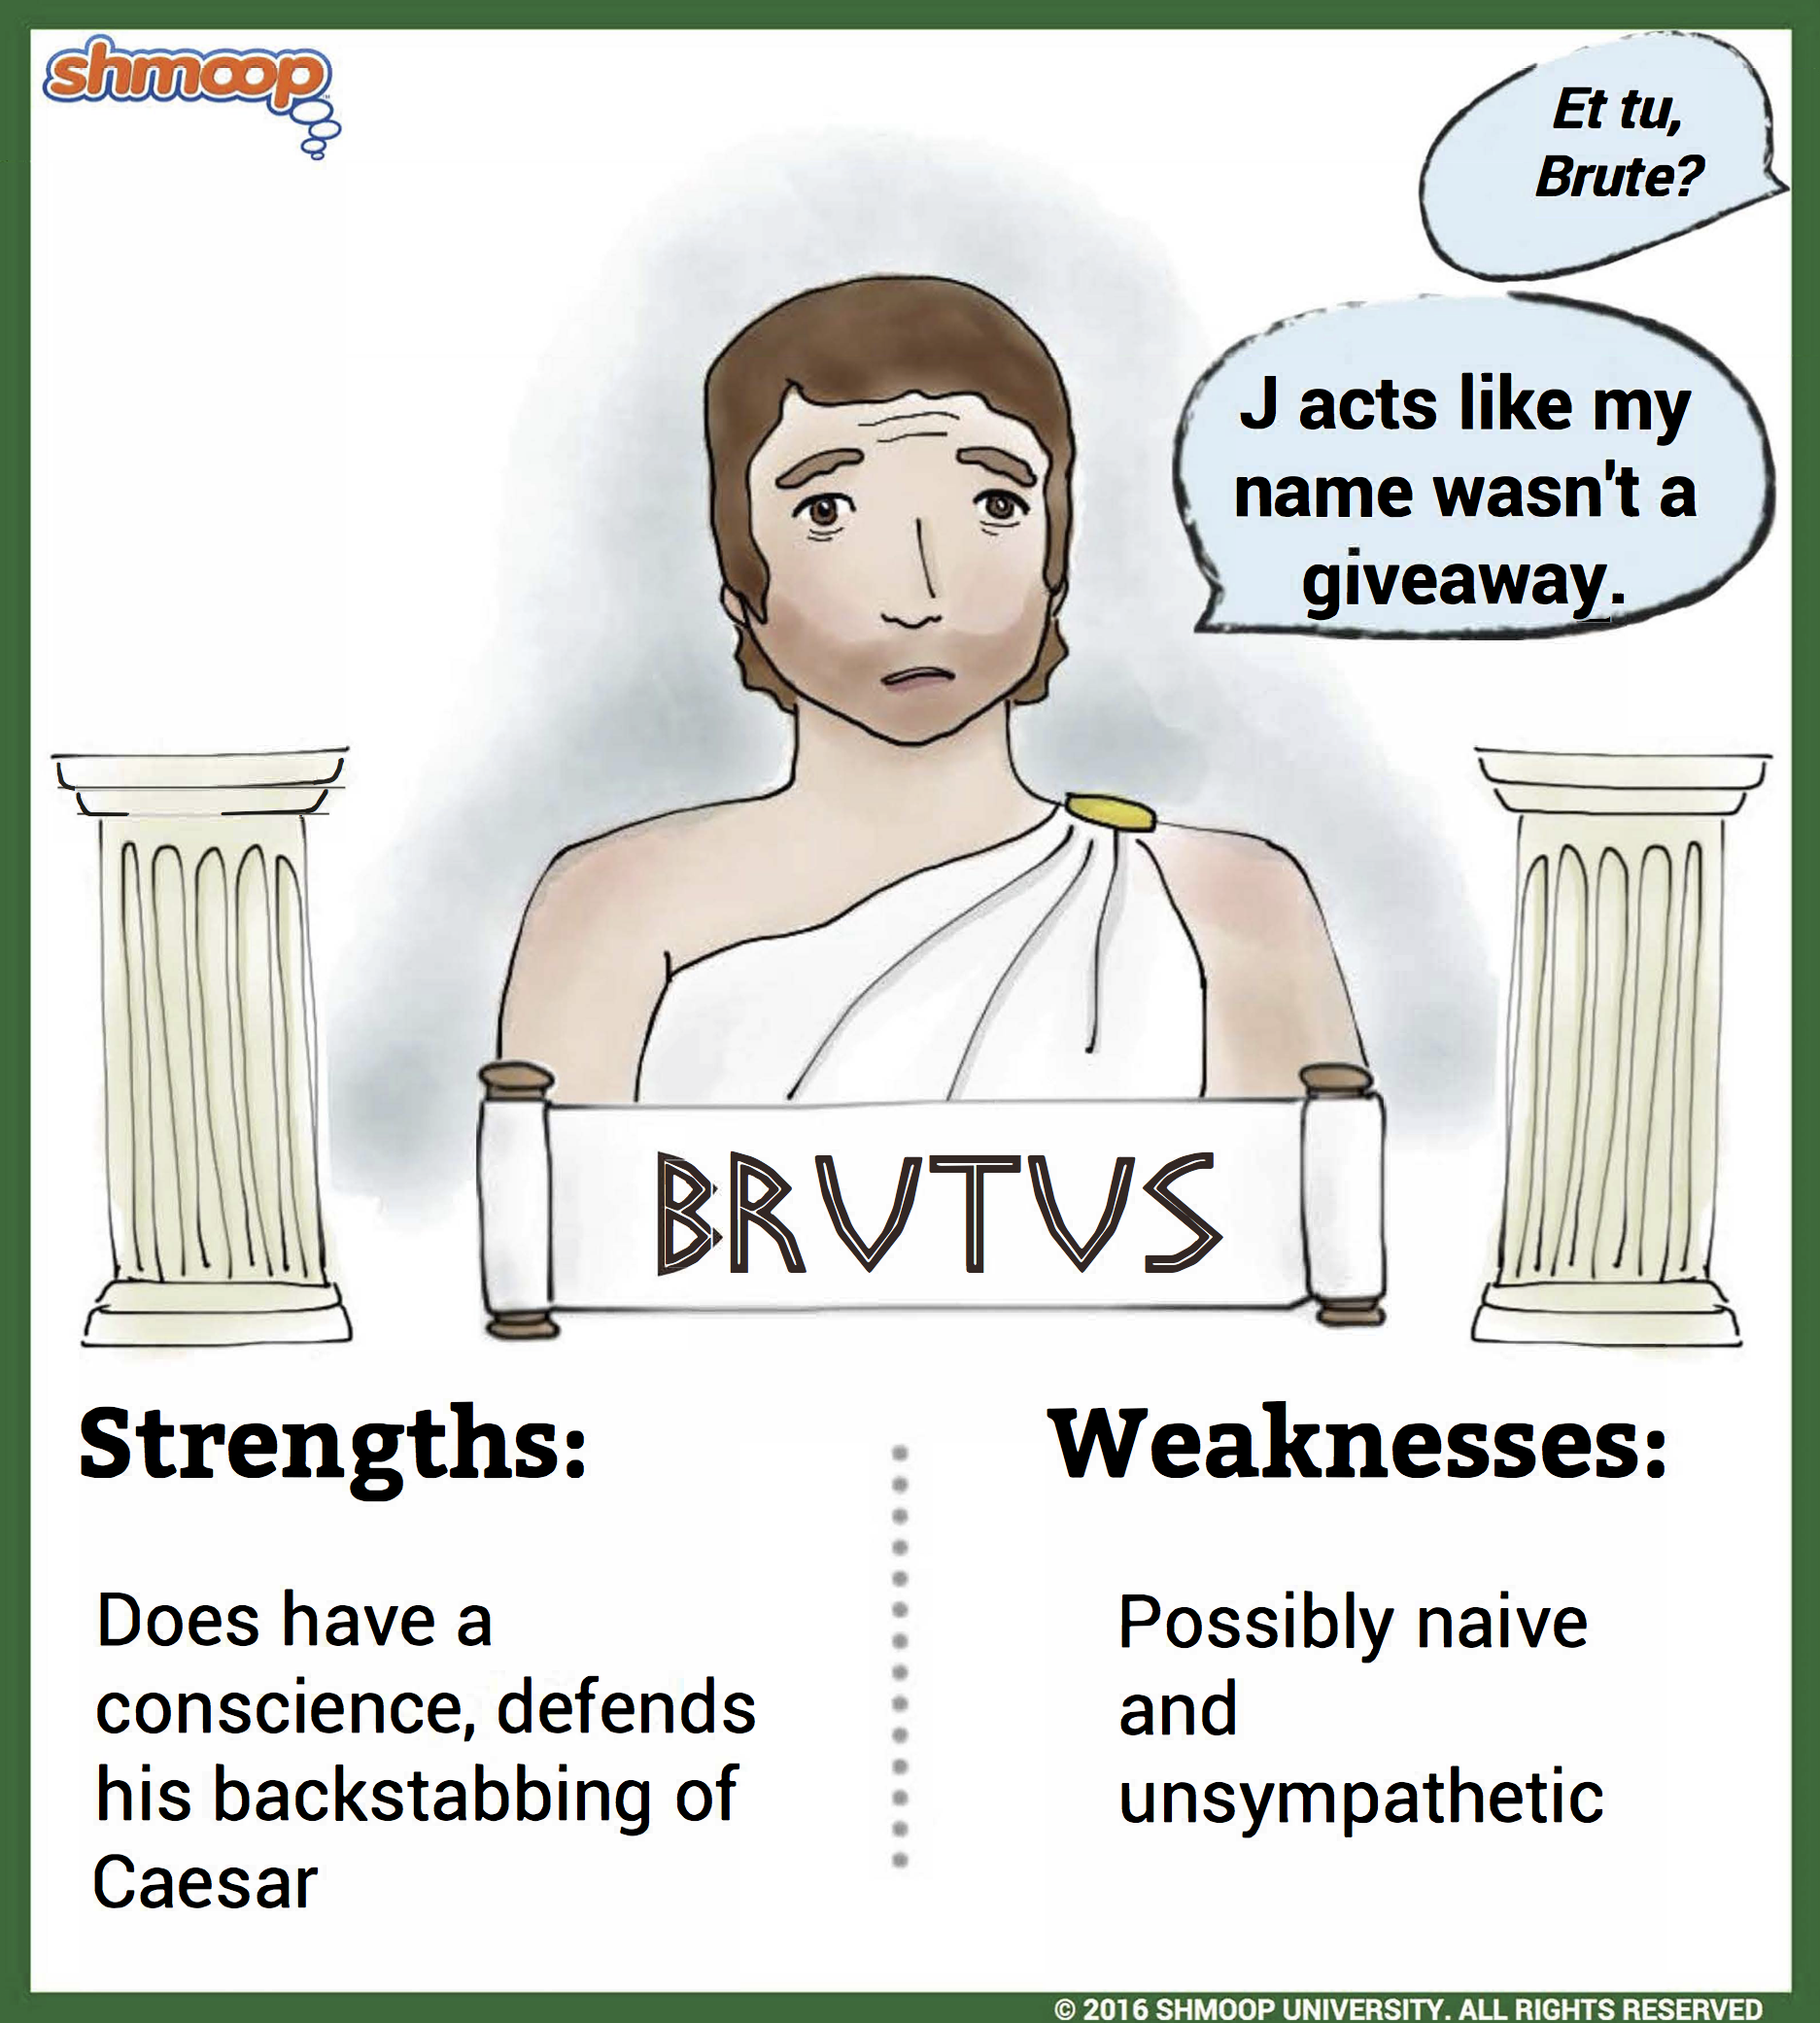 brutus antony essay Essay — students analyze ethos, pathos, and logos in brutus & antony's funeral speeches in julius caesar.